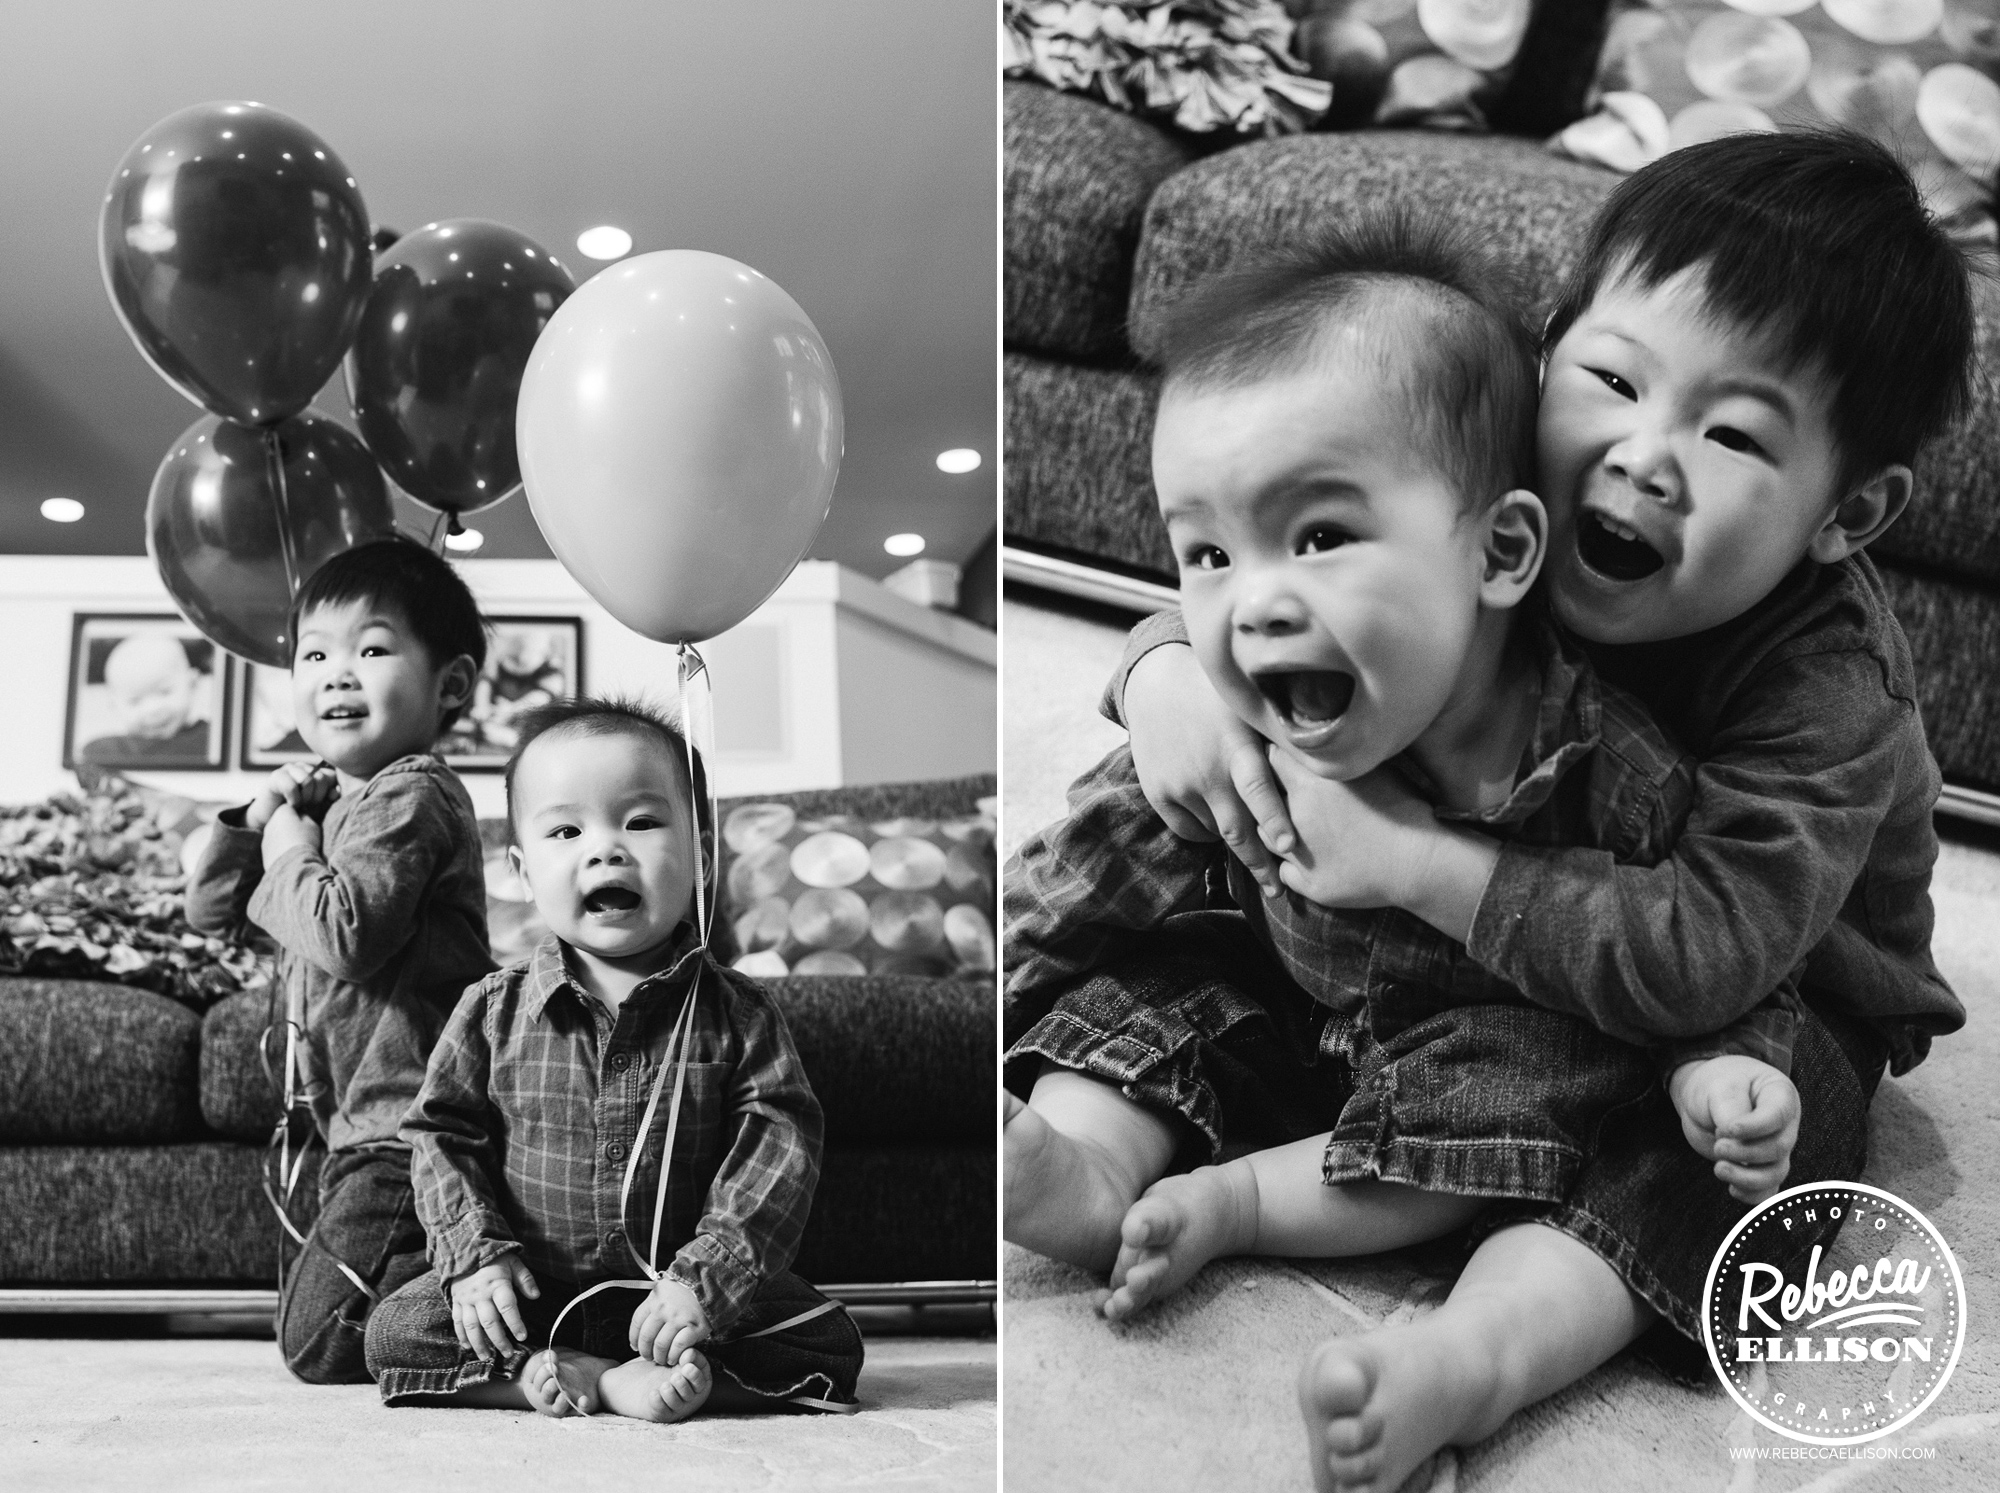 Sibling photo session at a first birthday celebration featuring balloons photographed by Rebecca Ellison Photography